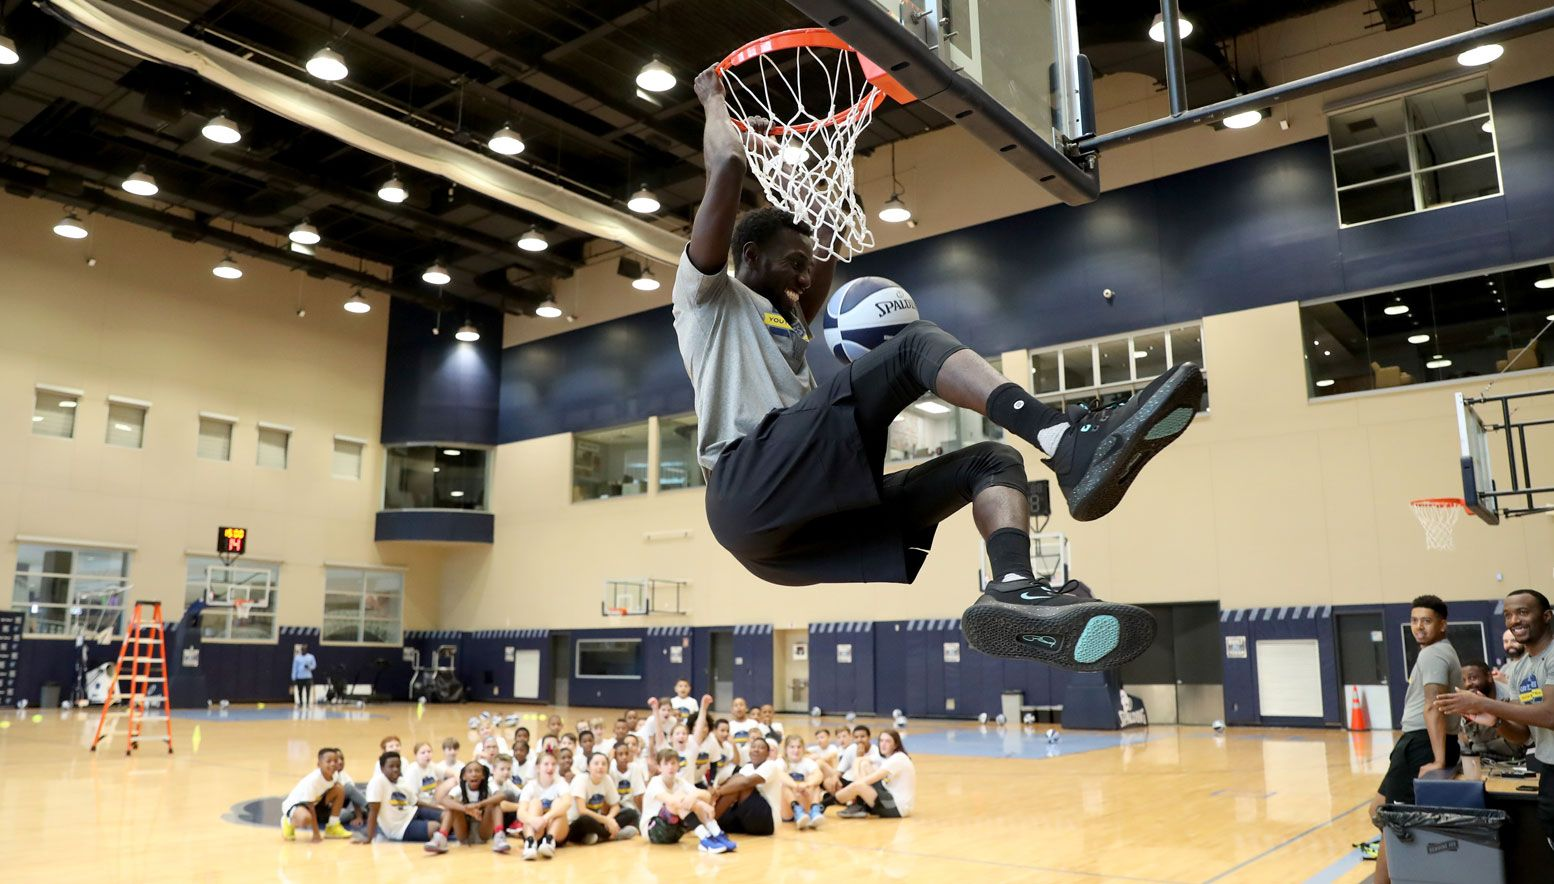 Sidy Sall dunking at a camp